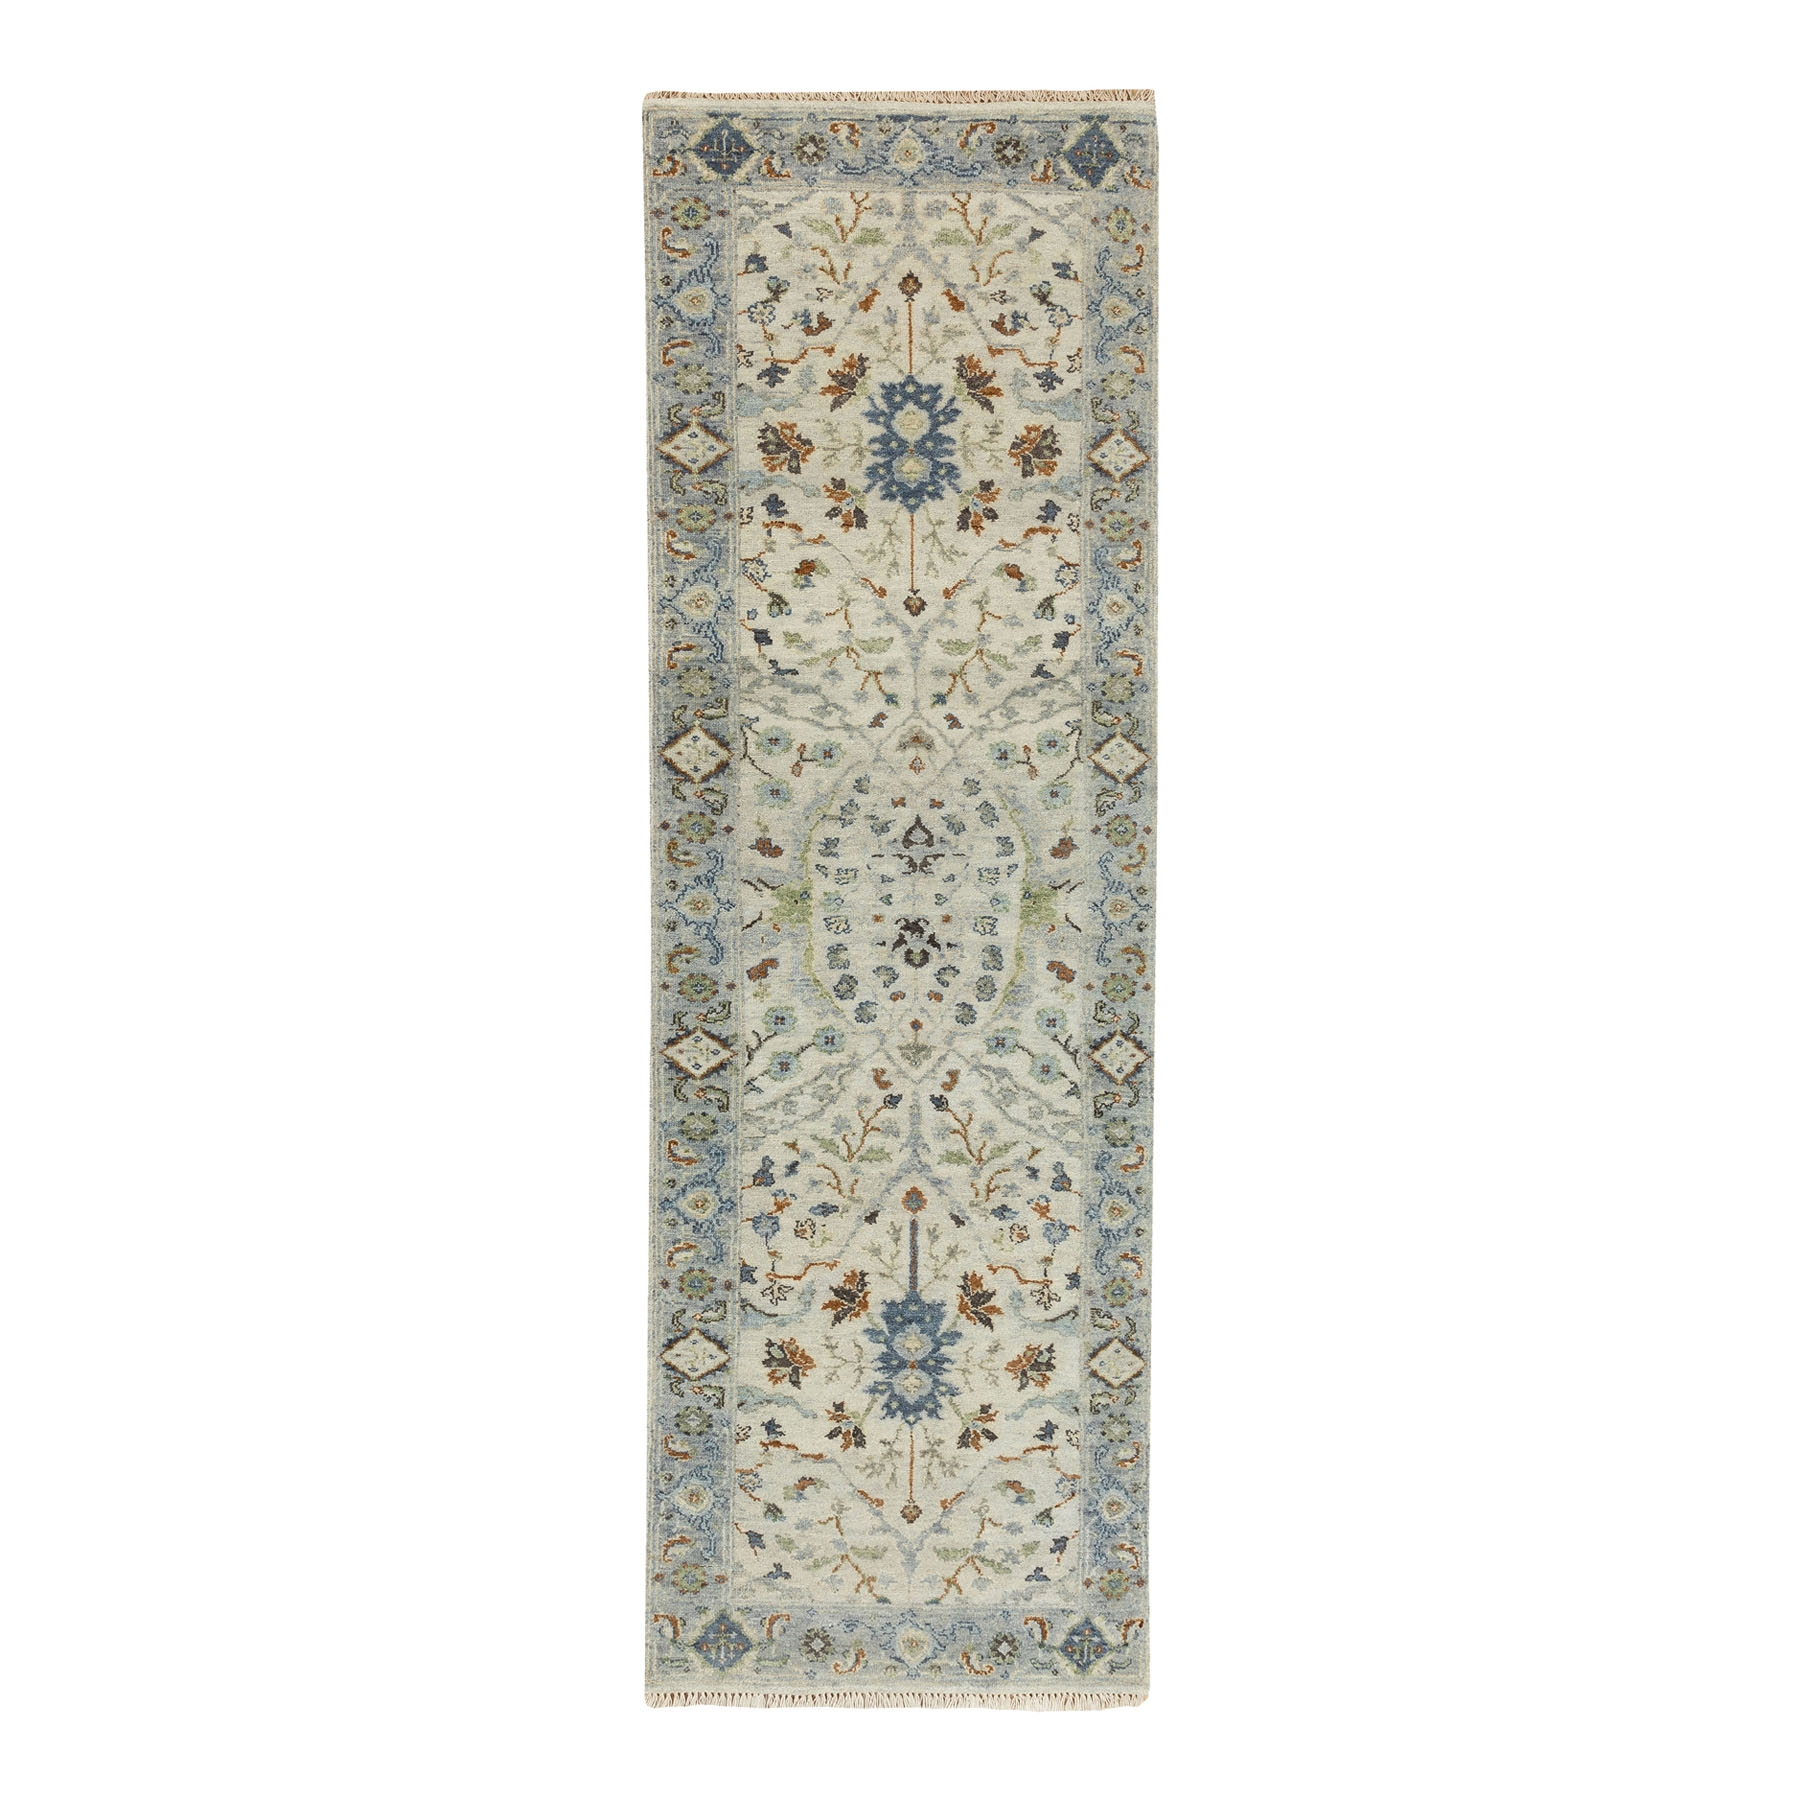 "2'5""x7'10"" Hand Knotted Light Gray Denser Weave Oushak Large Motifs Pure Wool Oriental Runner Rug"